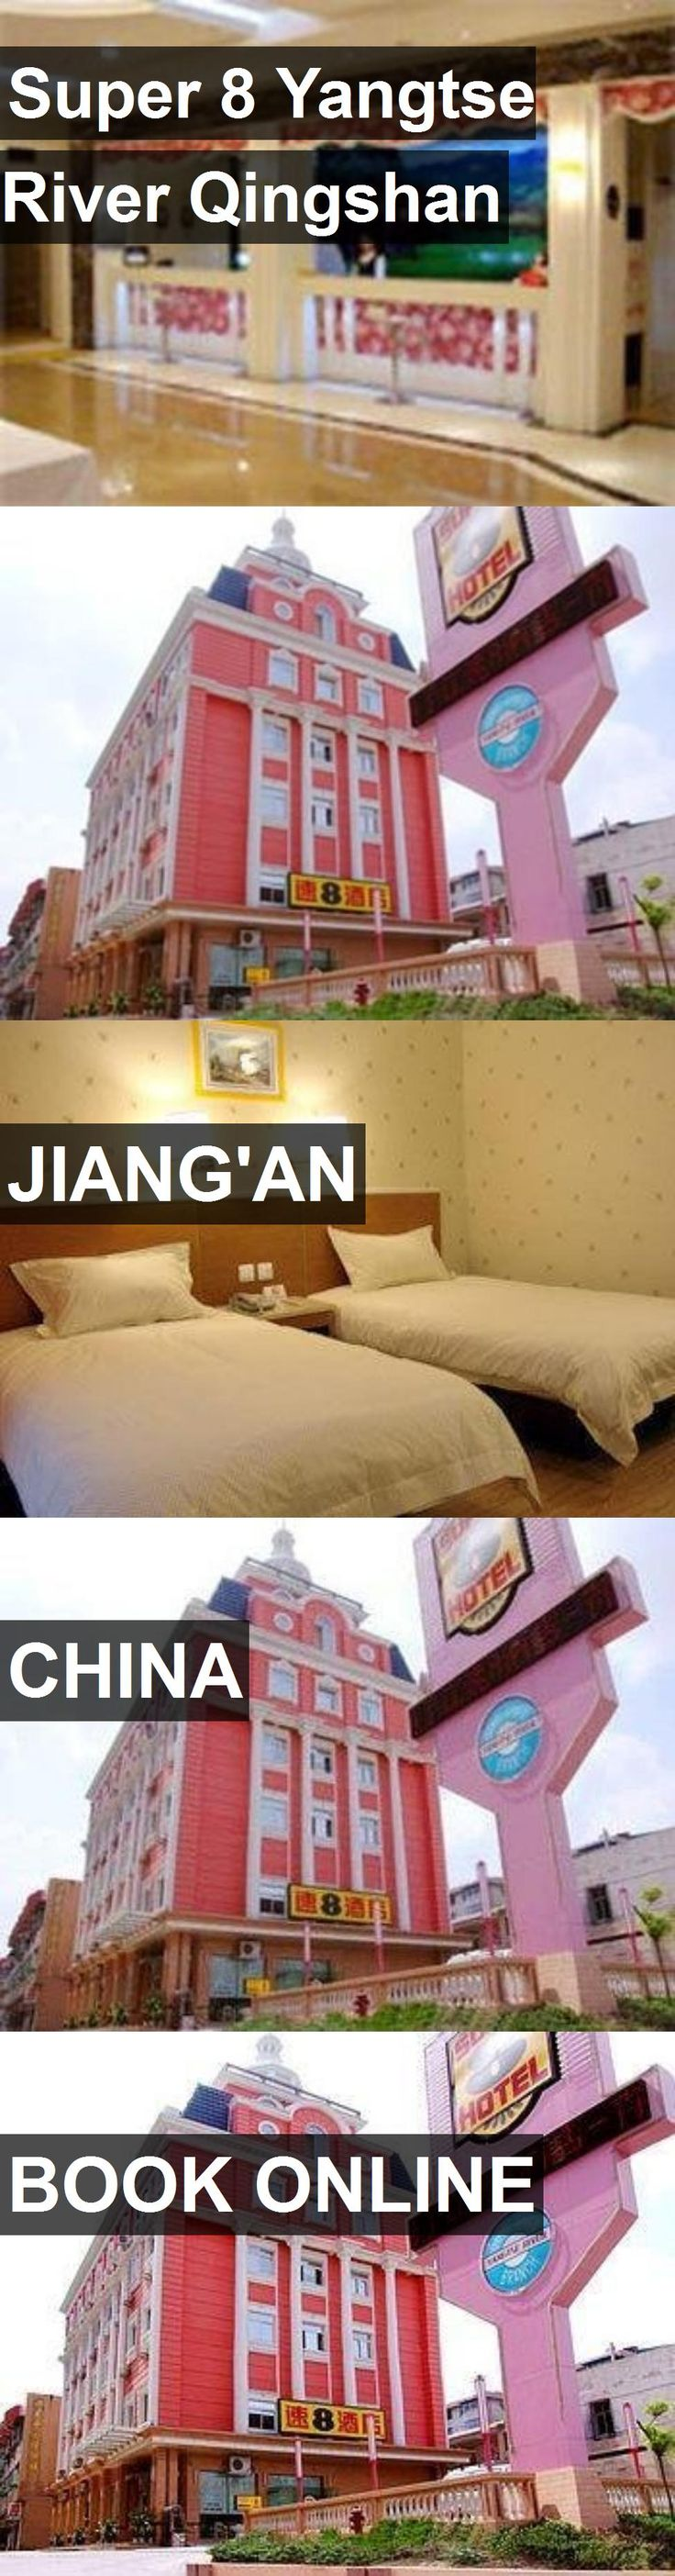 Hotel Super 8 Yangtse River Qingshan in Jiang'an, China. For more information, photos, reviews and best prices please follow the link. #China #Jiang'an #Super8YangtseRiverQingshan #hotel #travel #vacation